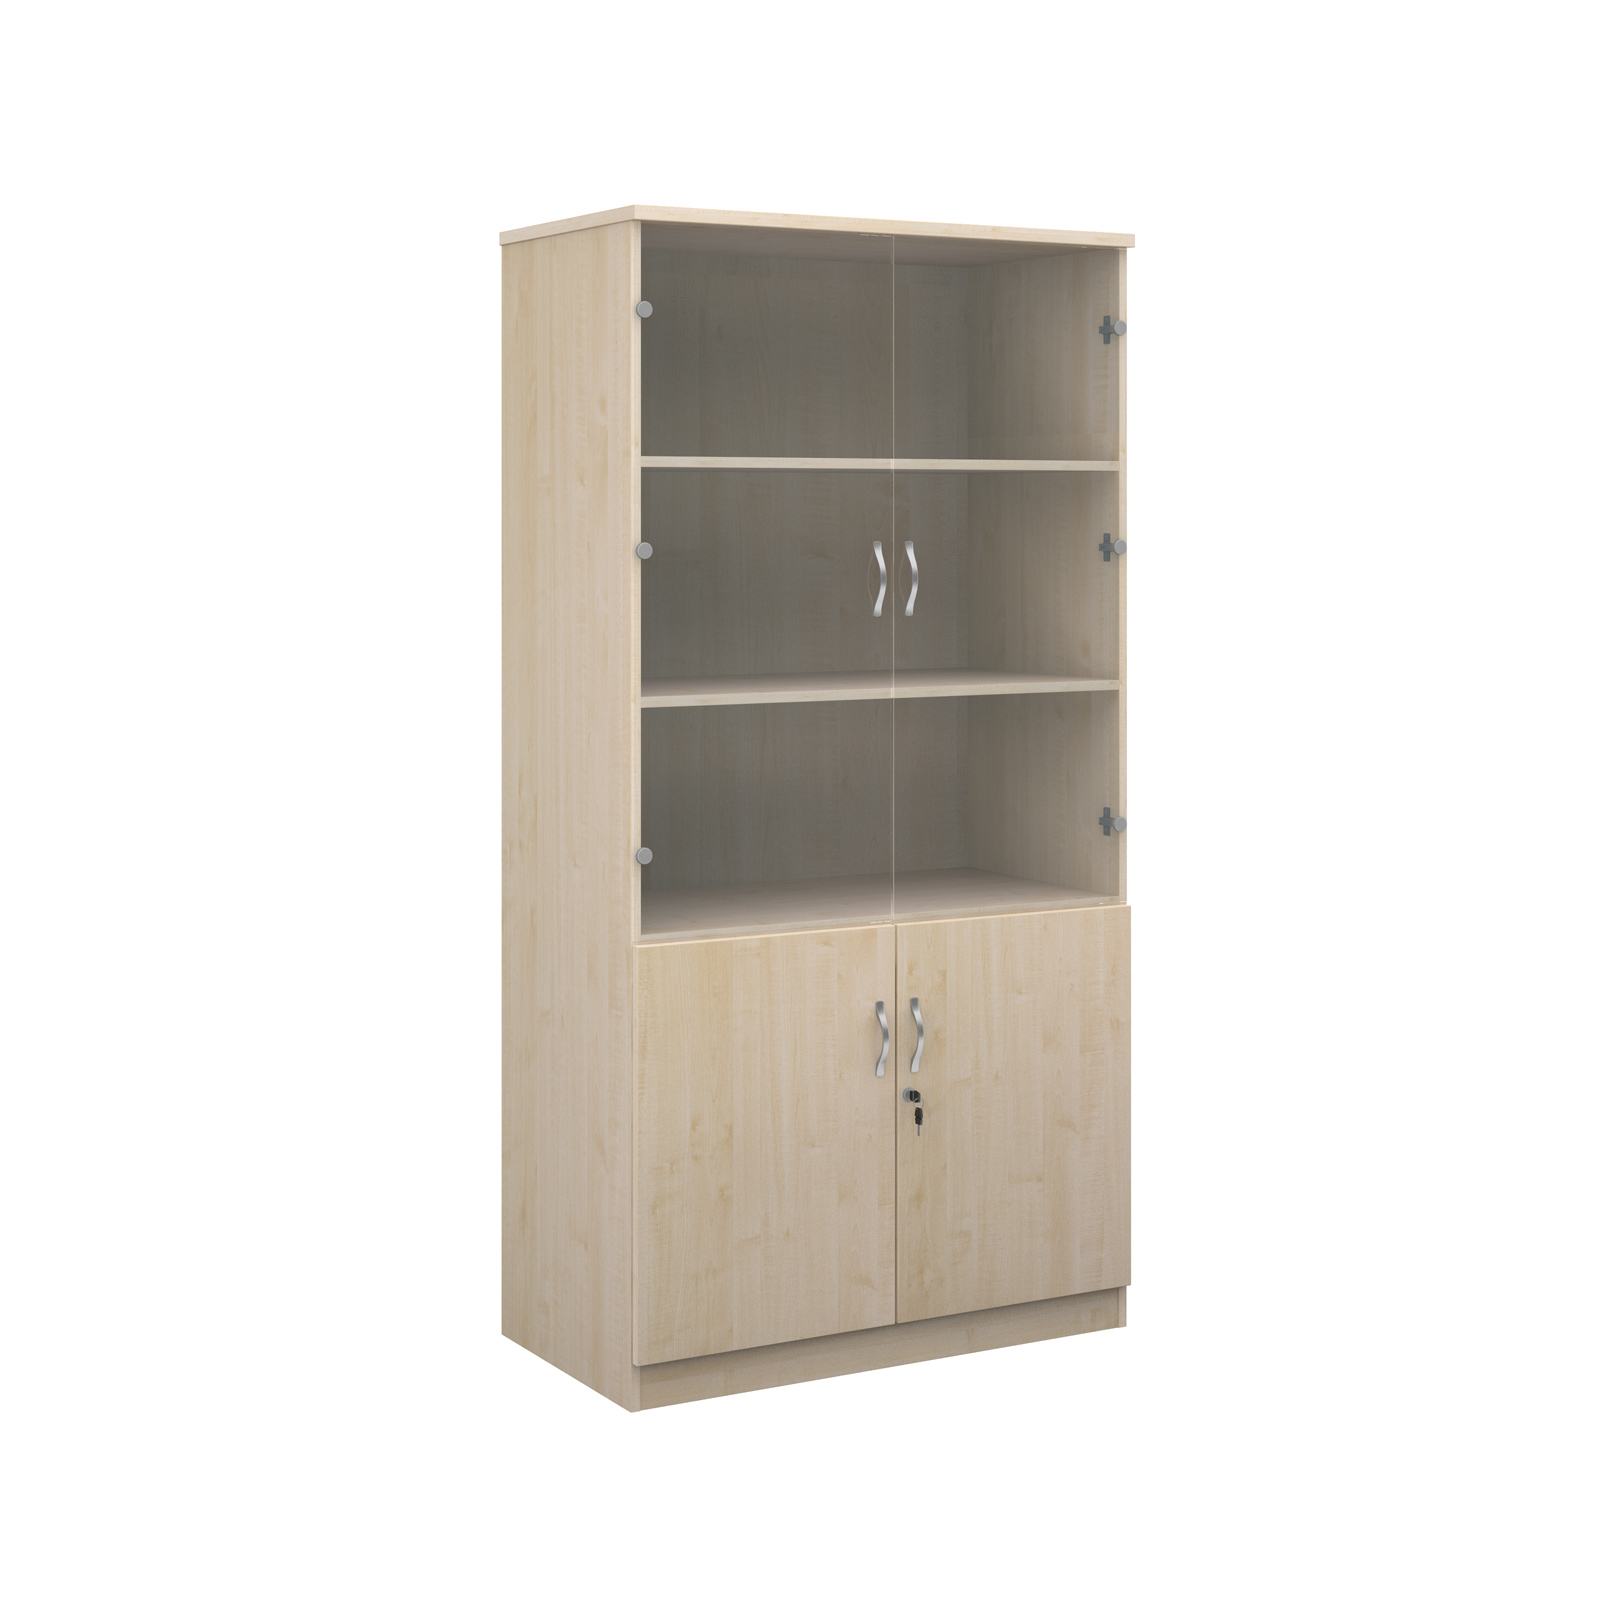 2000mm high deluxe combination bookcase with wood and glass doors